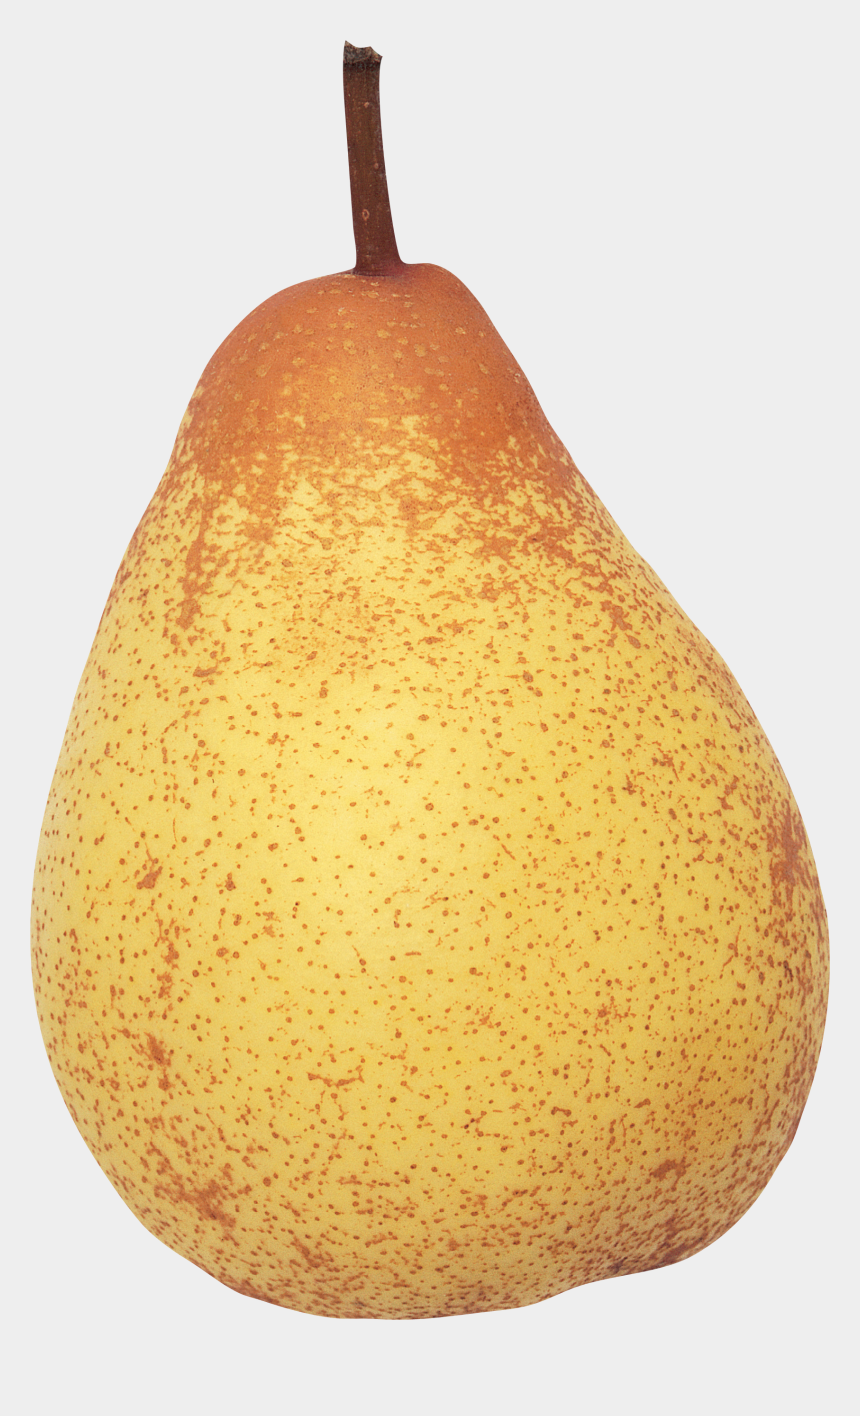 pears clipart, Cartoons - Pear Png Image - Pear High Resolution